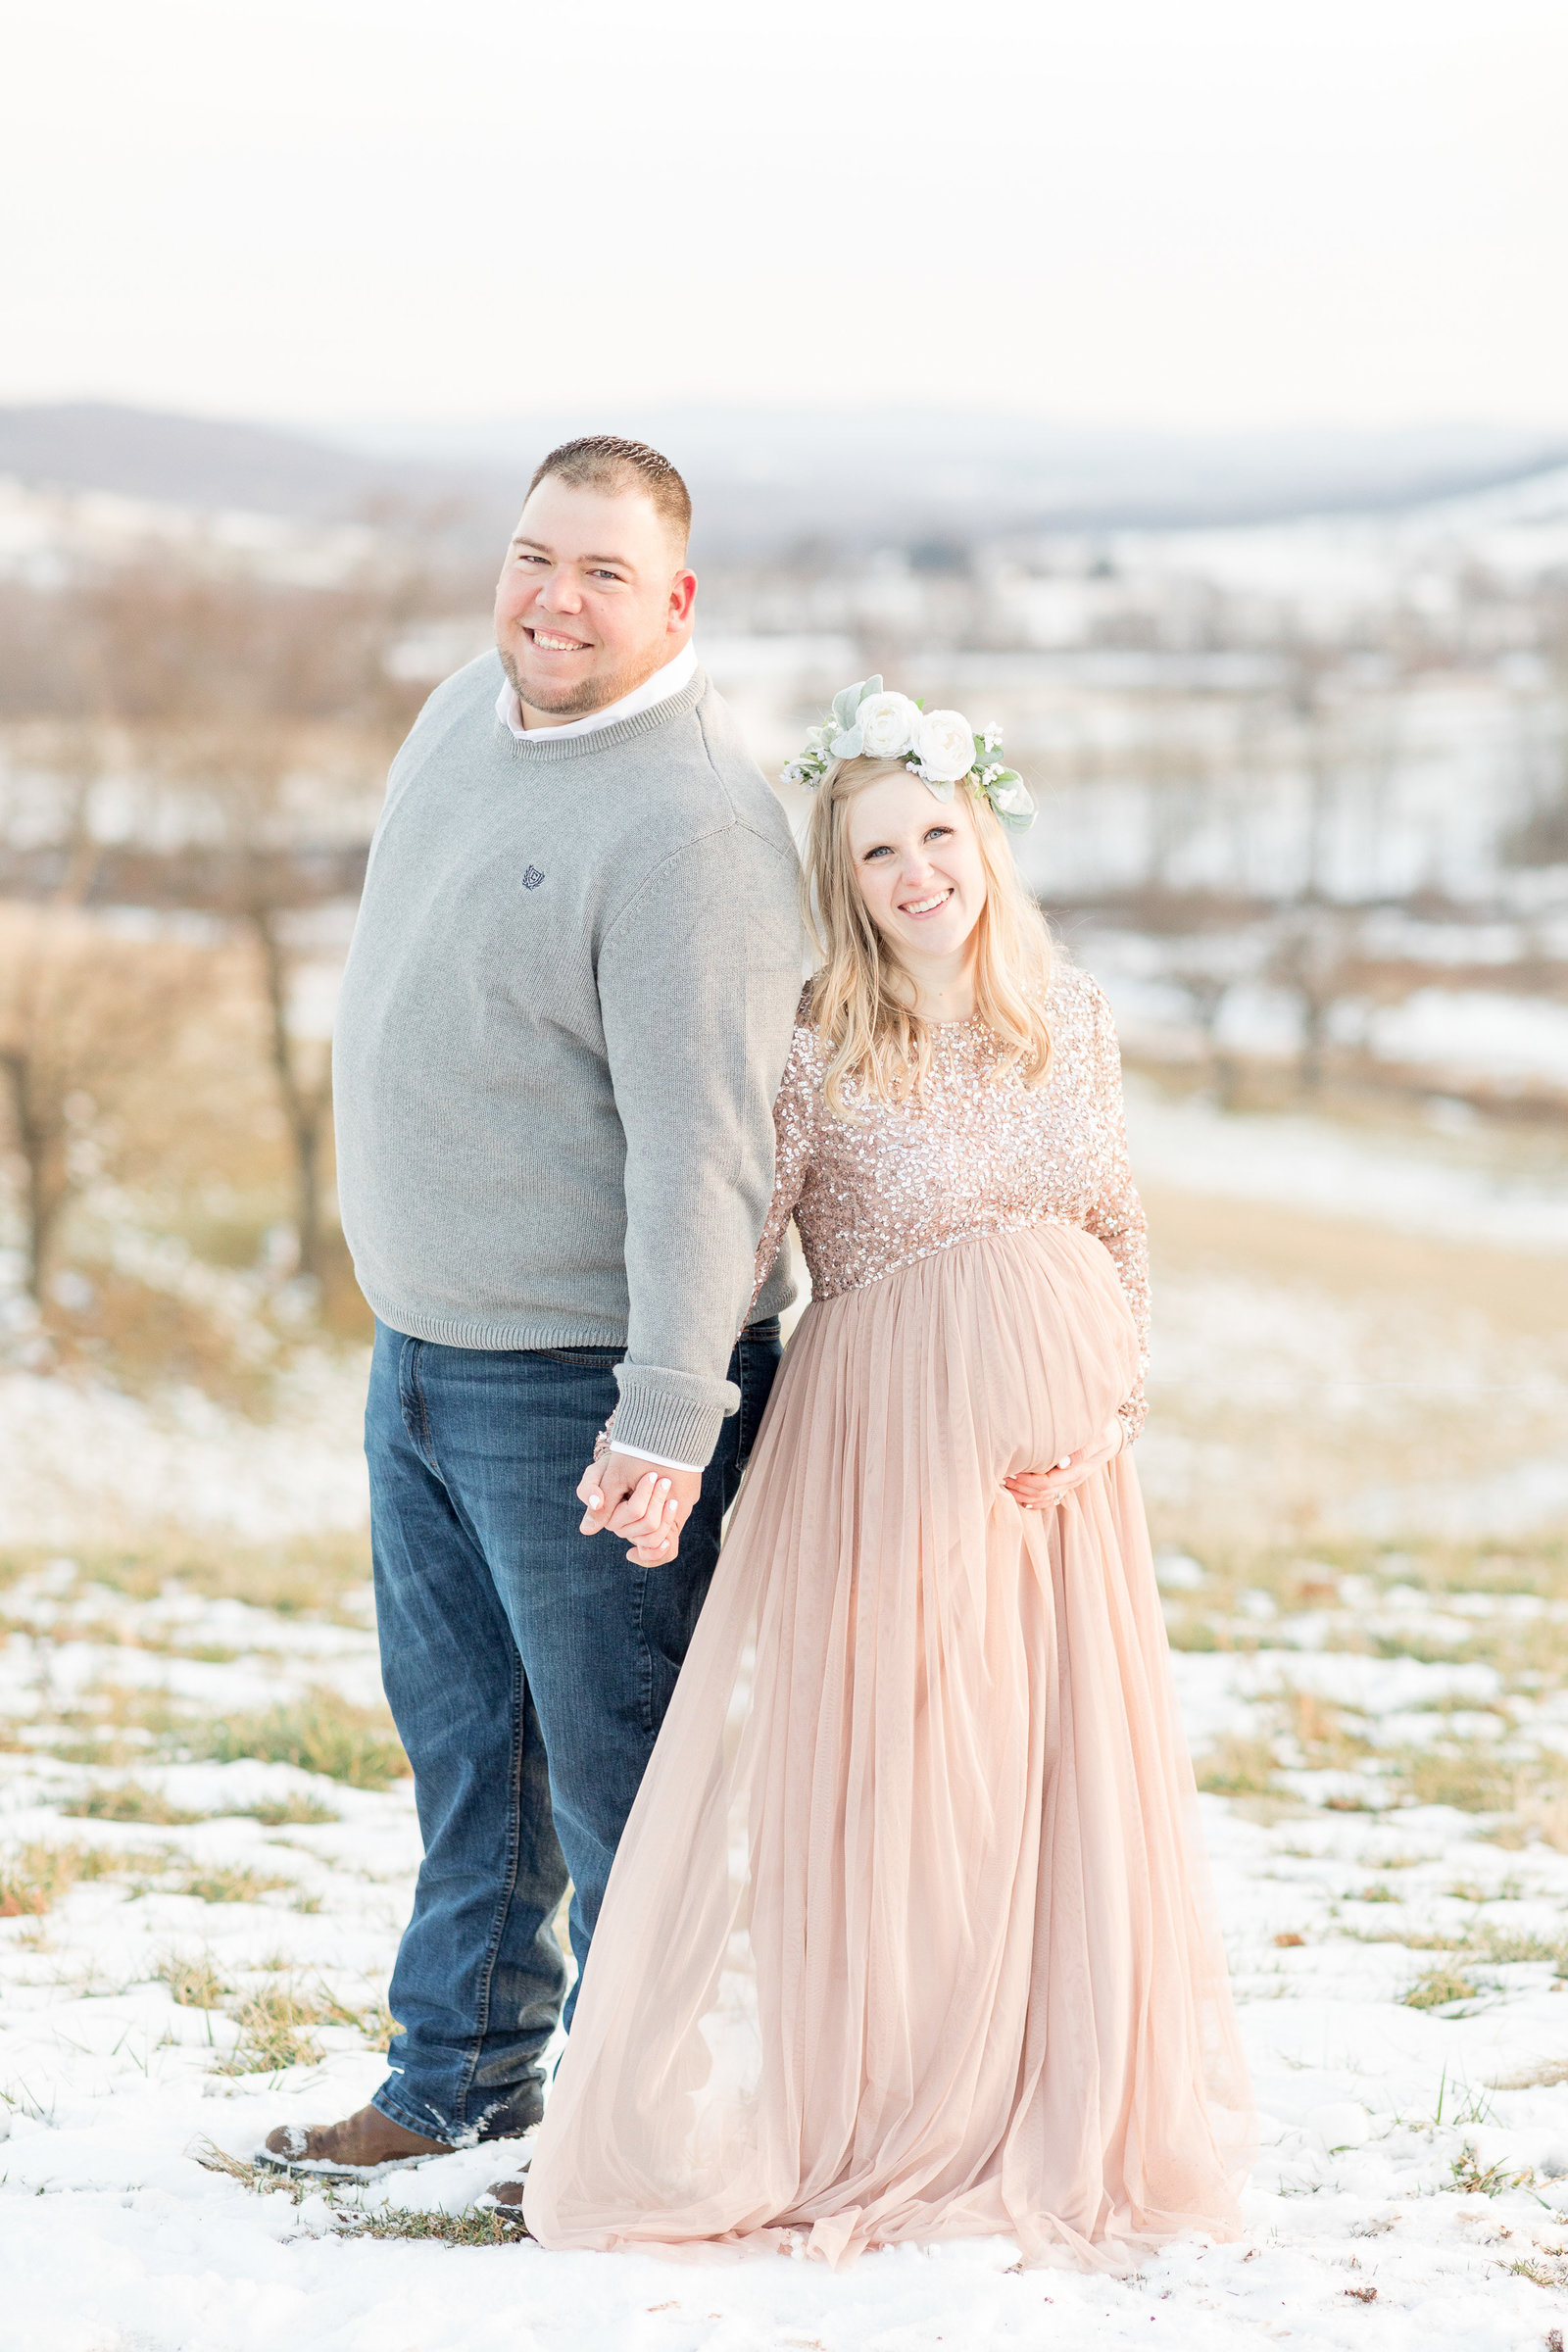 jess-dereck-snowy-winter-maternity-photo-session-019